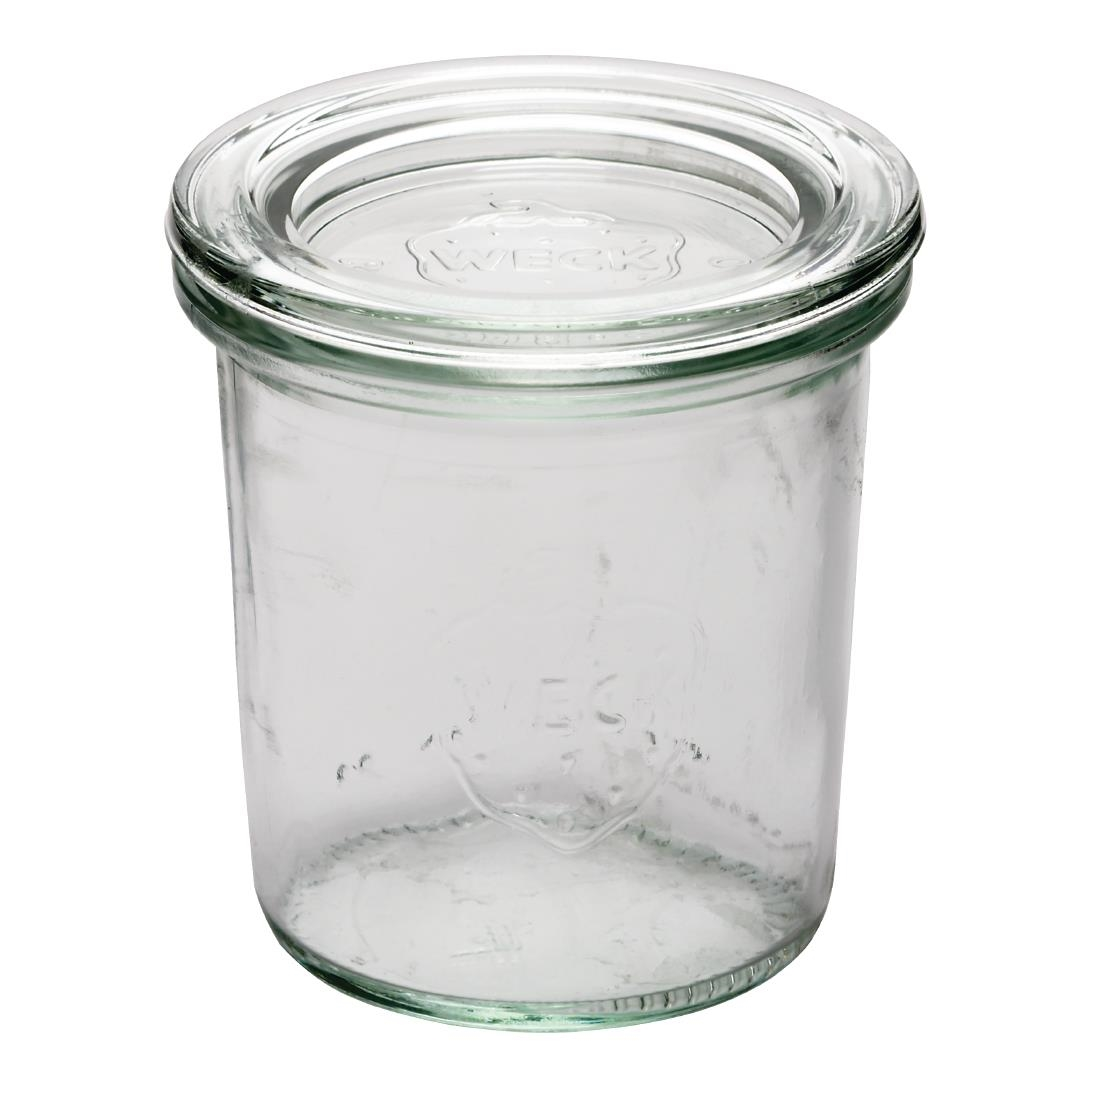 Image of APS 140ml Weck Jar (Pack of 12) Pack of 12